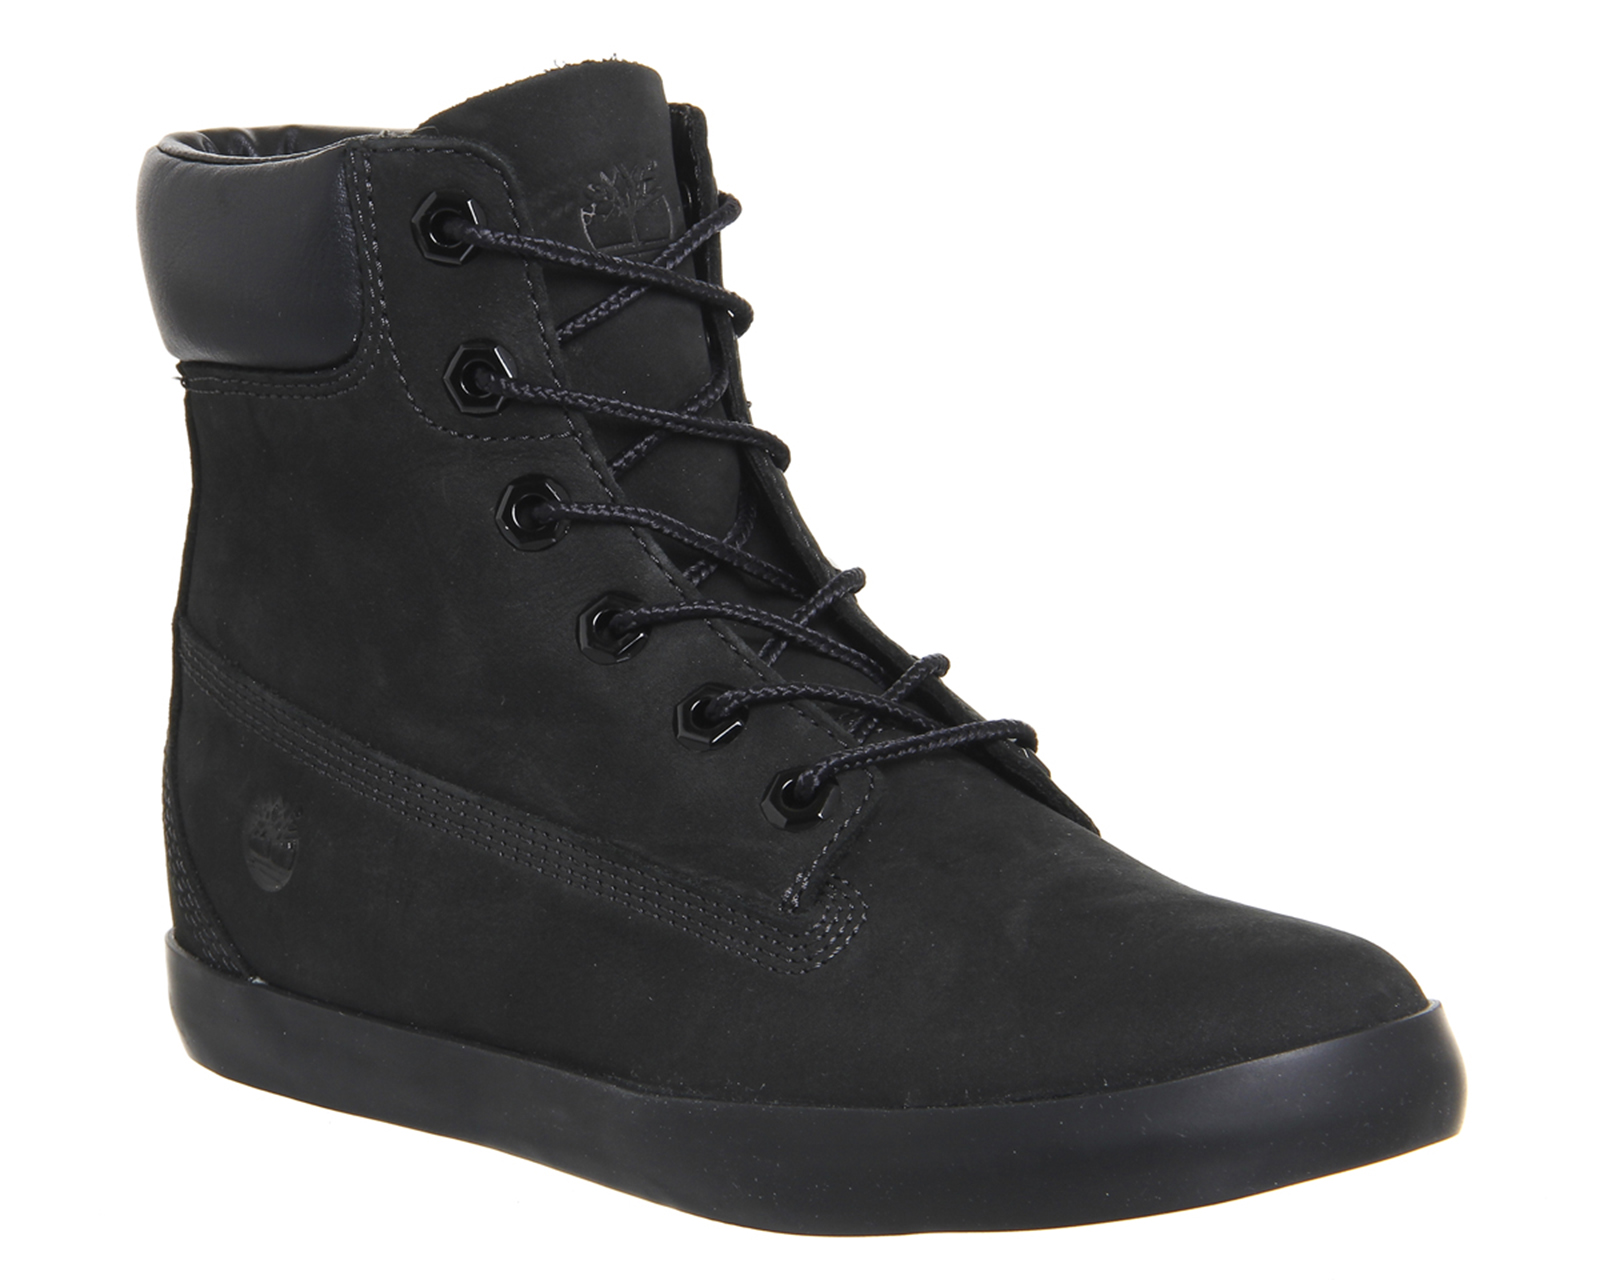 Luxury Timberland Womens Black Premium 14 Inch Boots 8167R | TOWER London